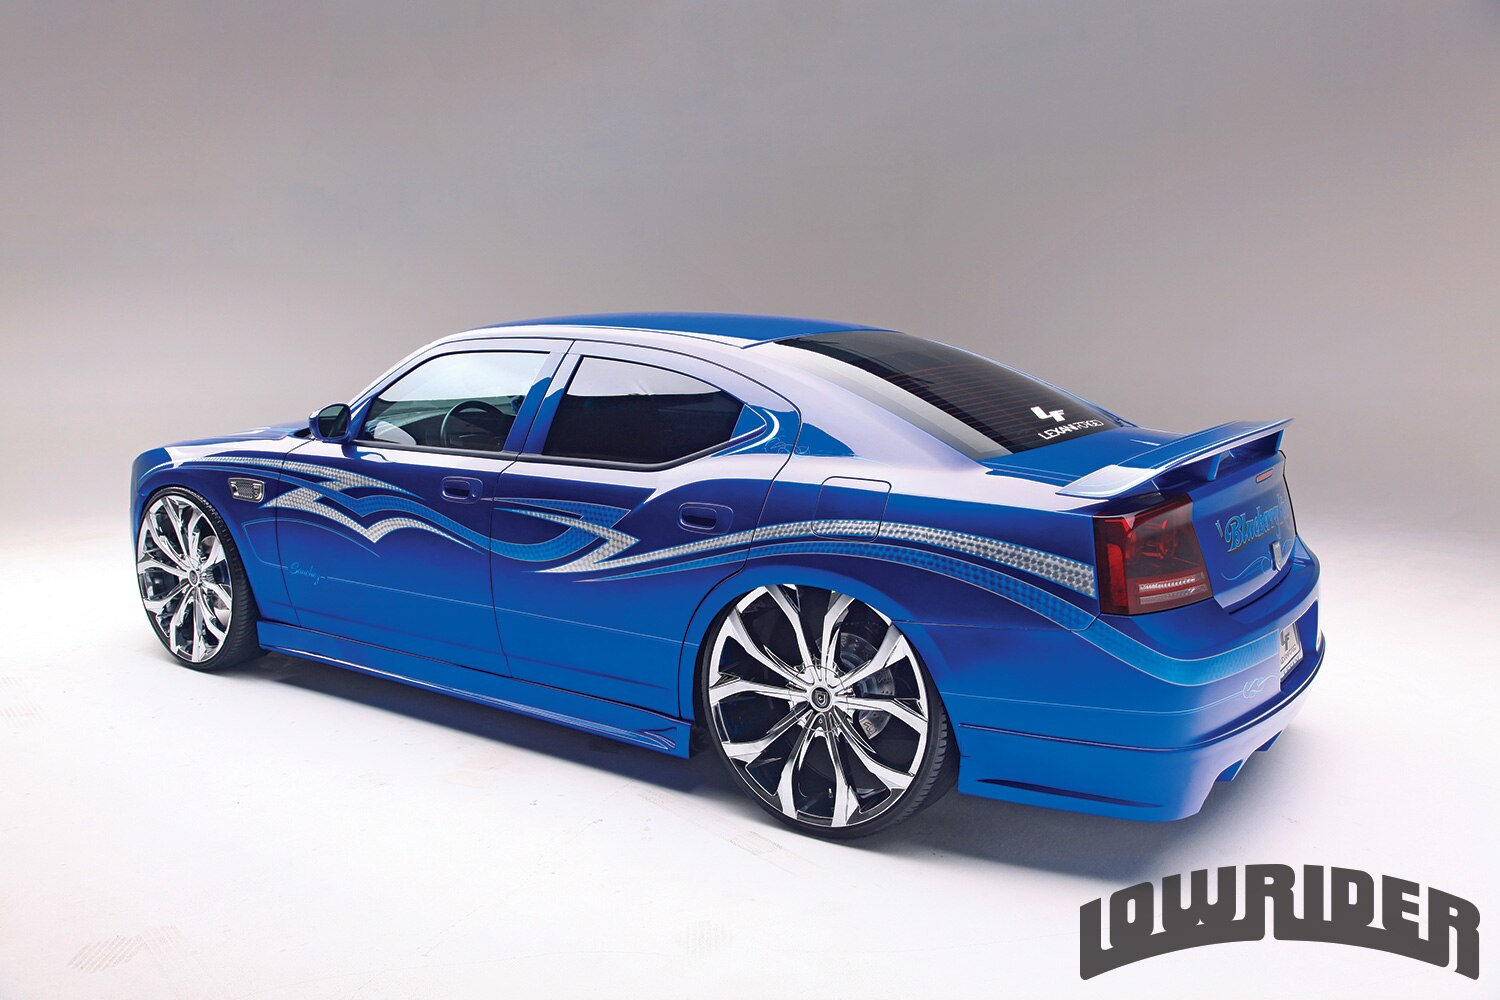 2008-dodge-charger-rear-left-side-view2